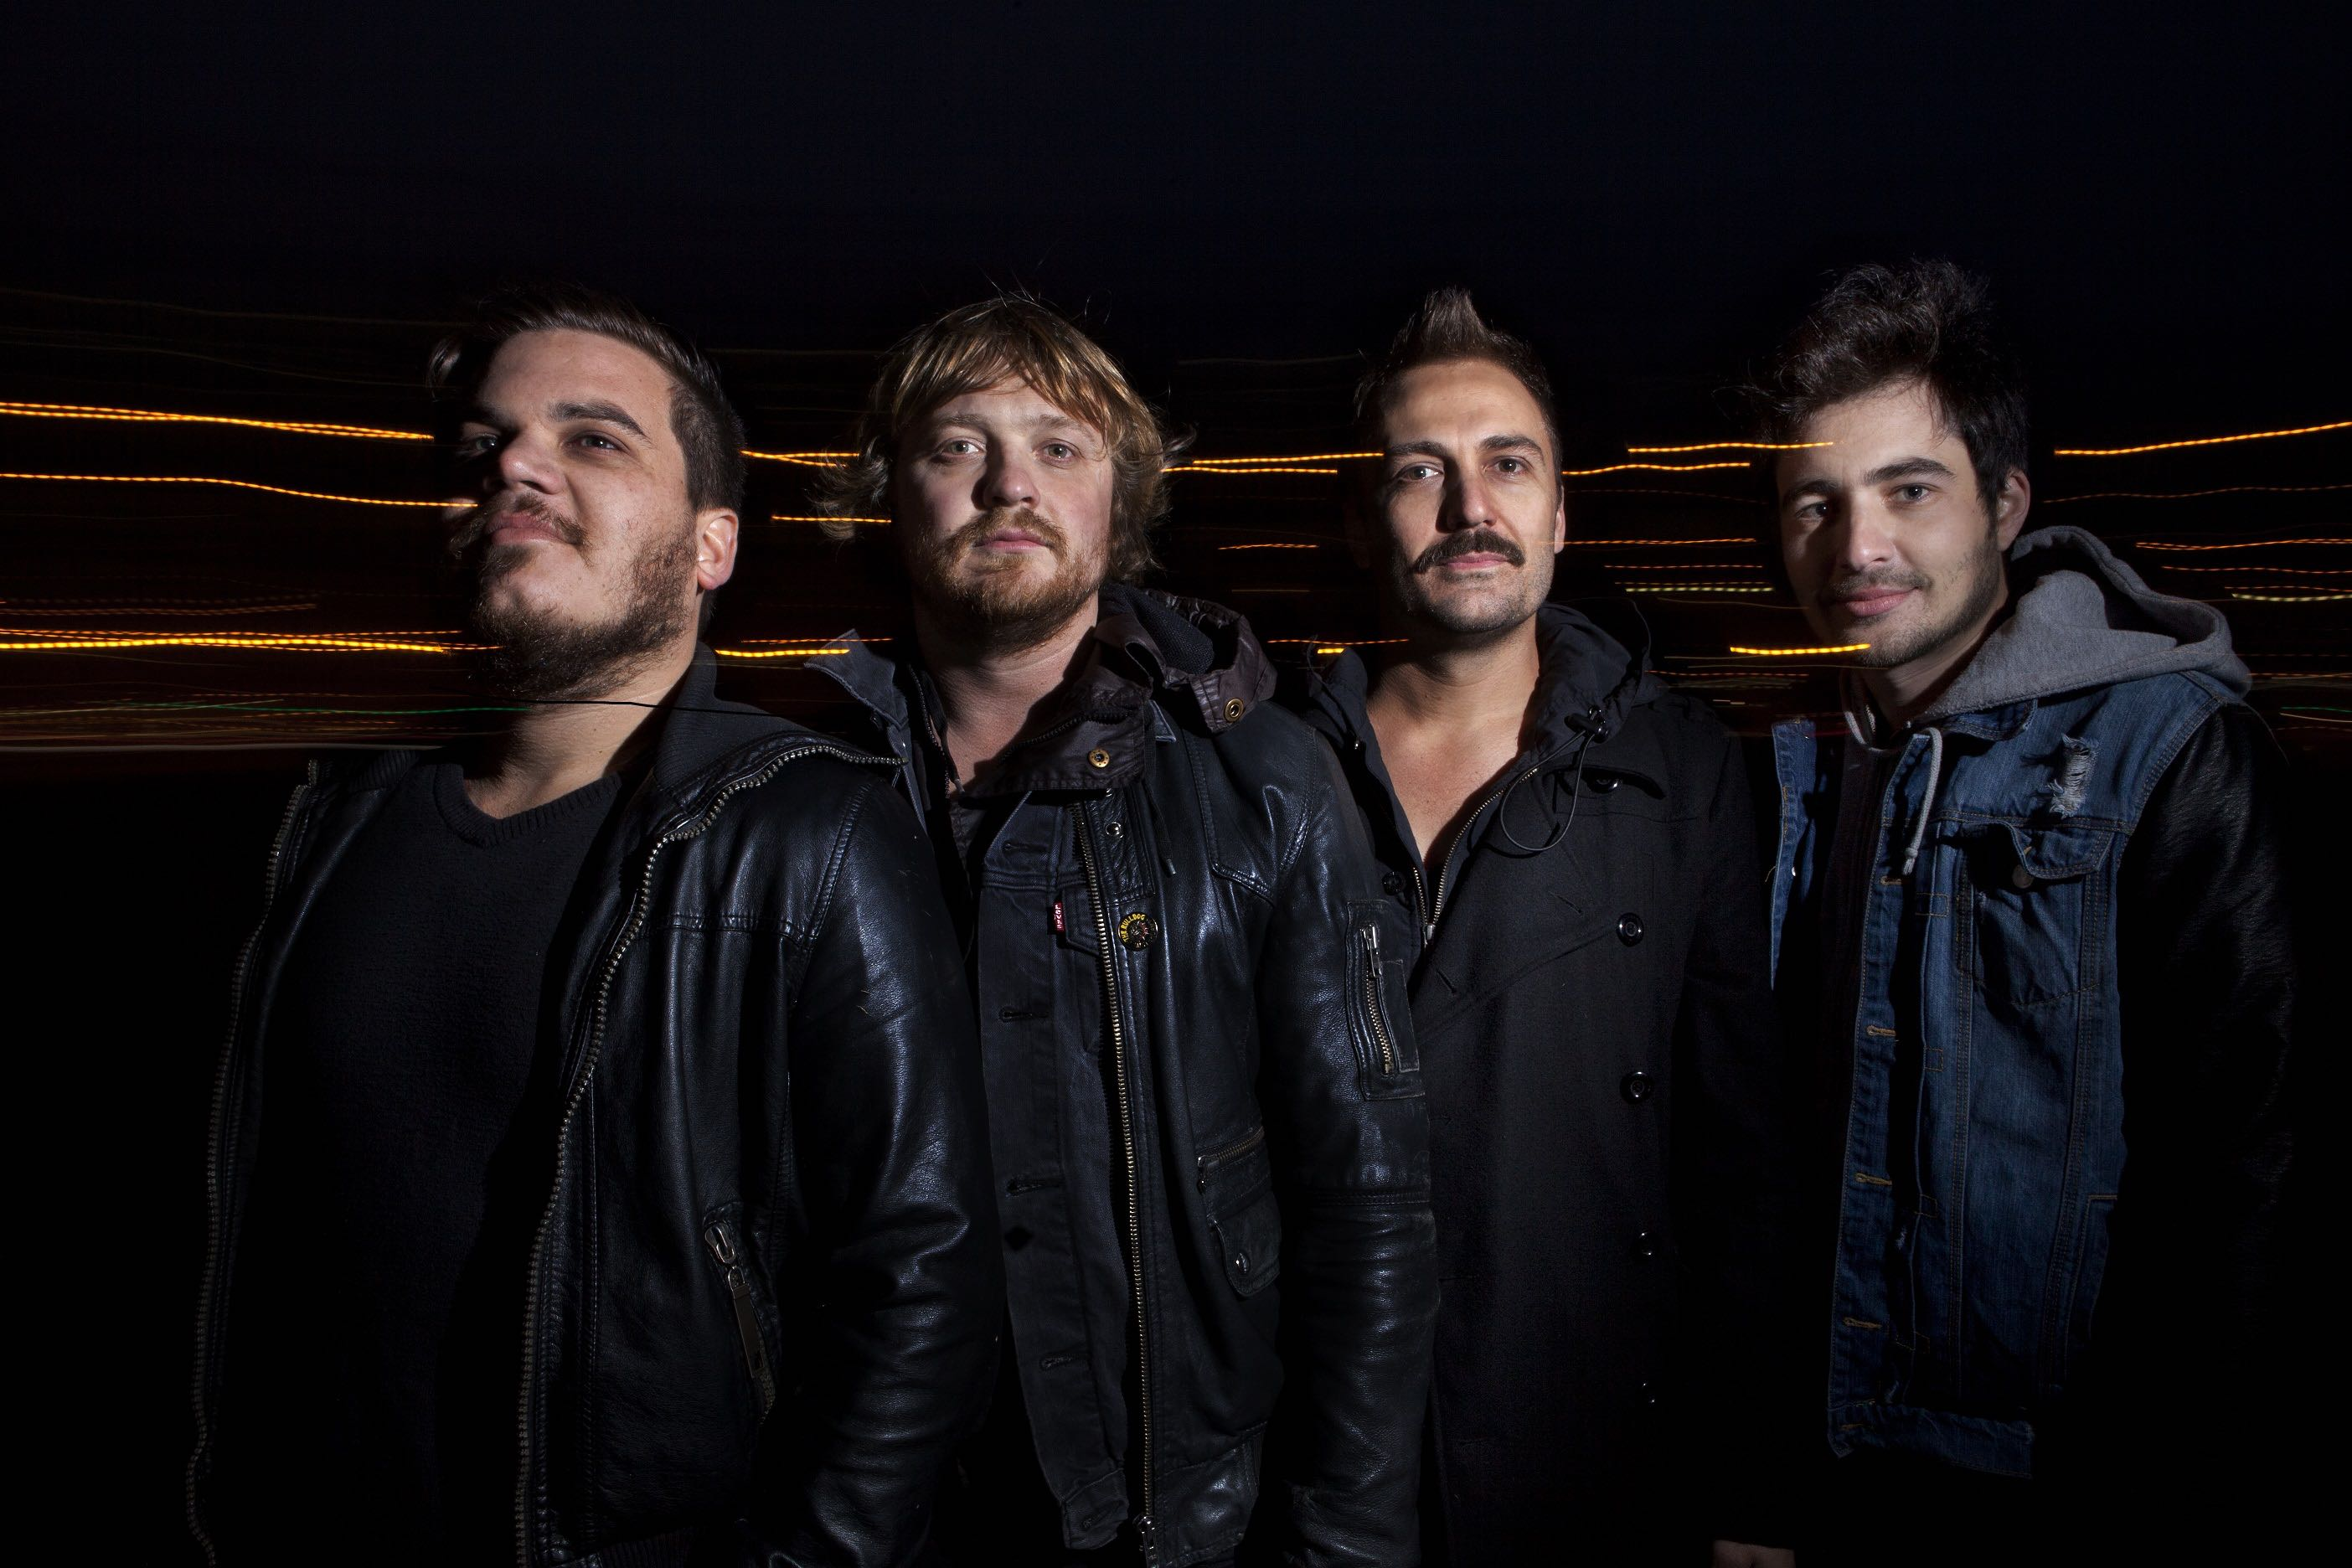 Our final interview with South African rock 'n roll band Van Coke Kartel